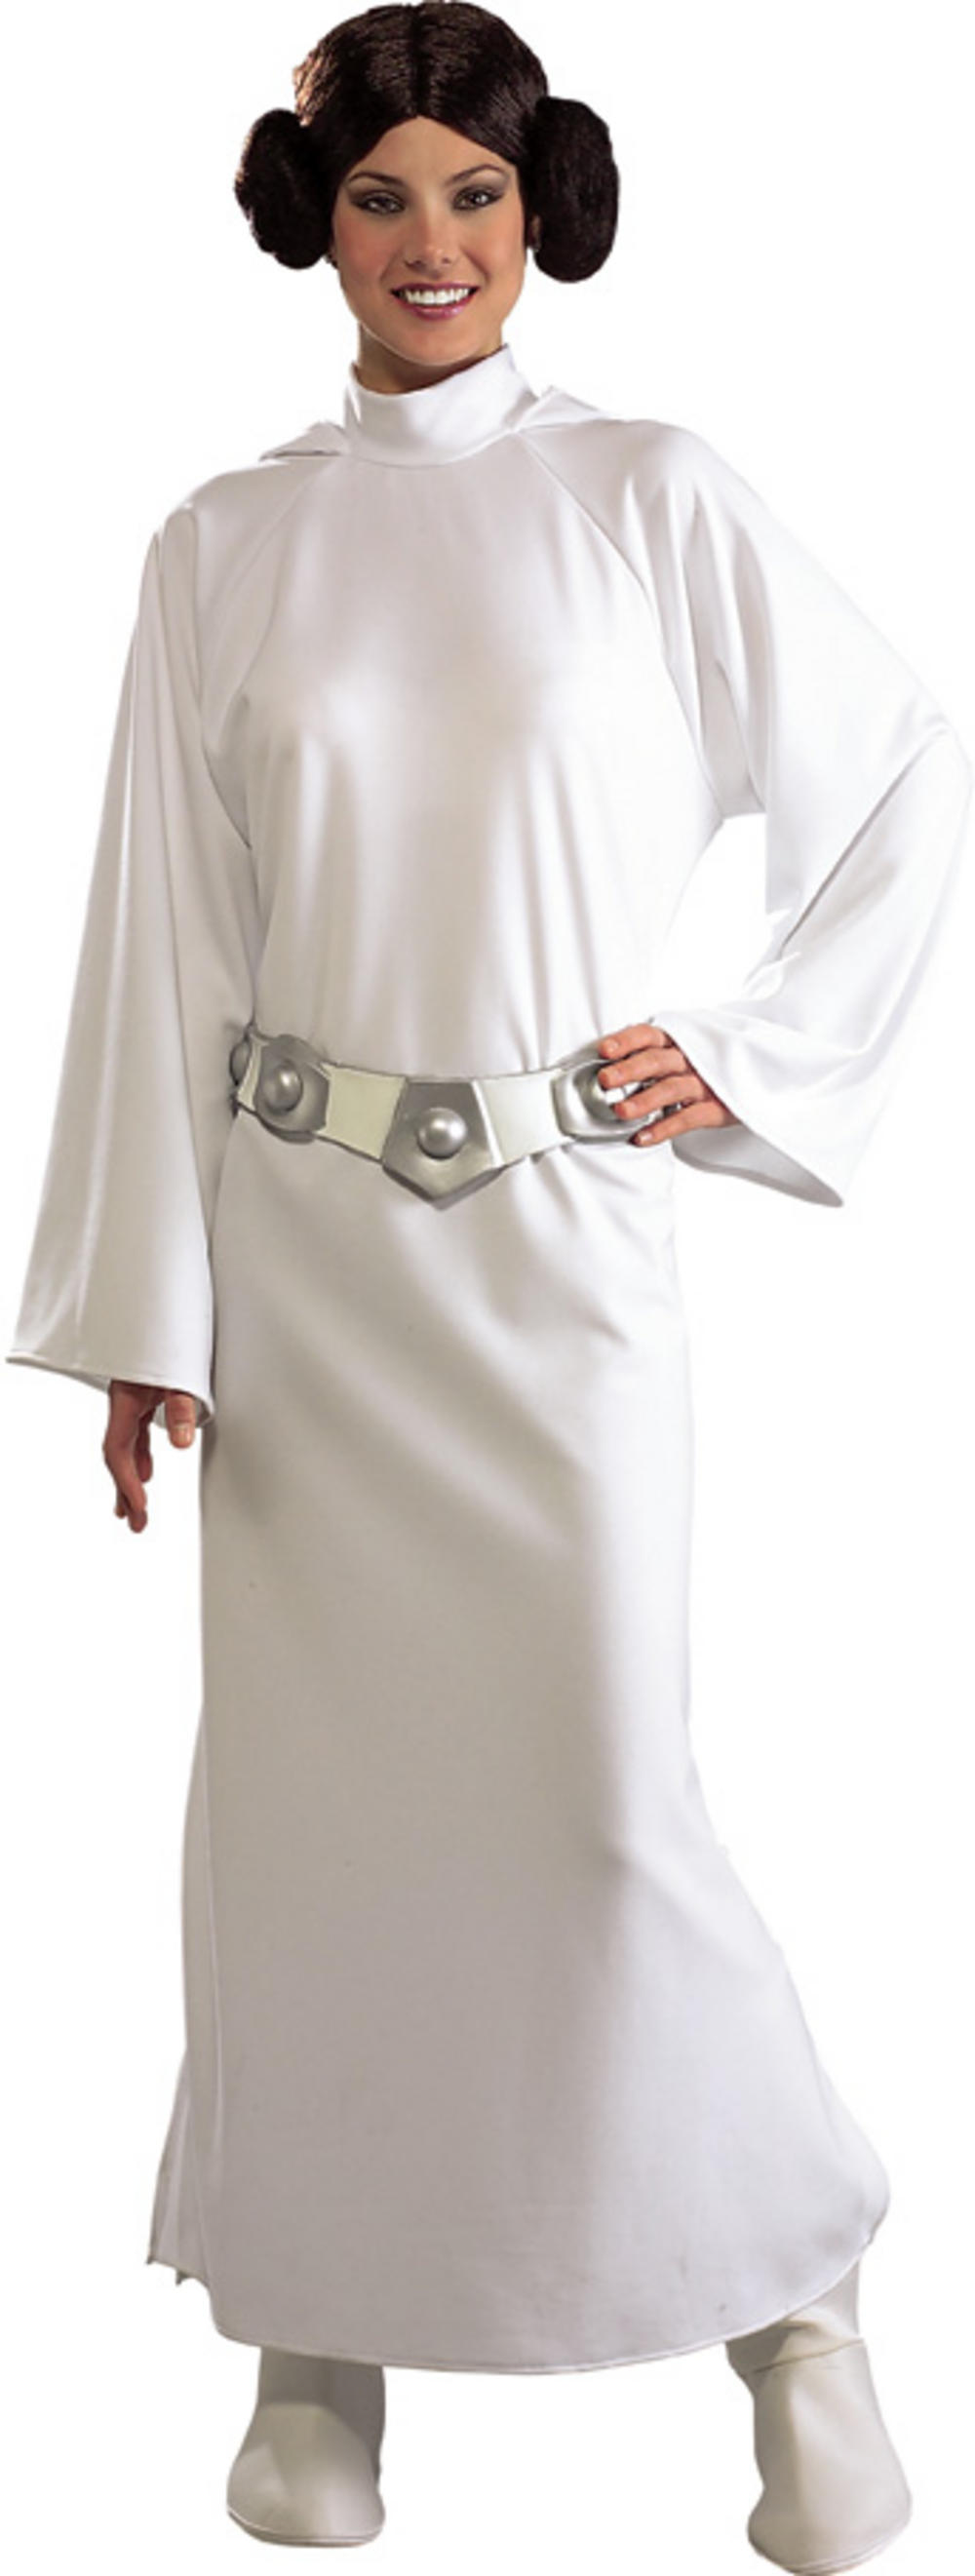 Deluxe Princess Leia Costume